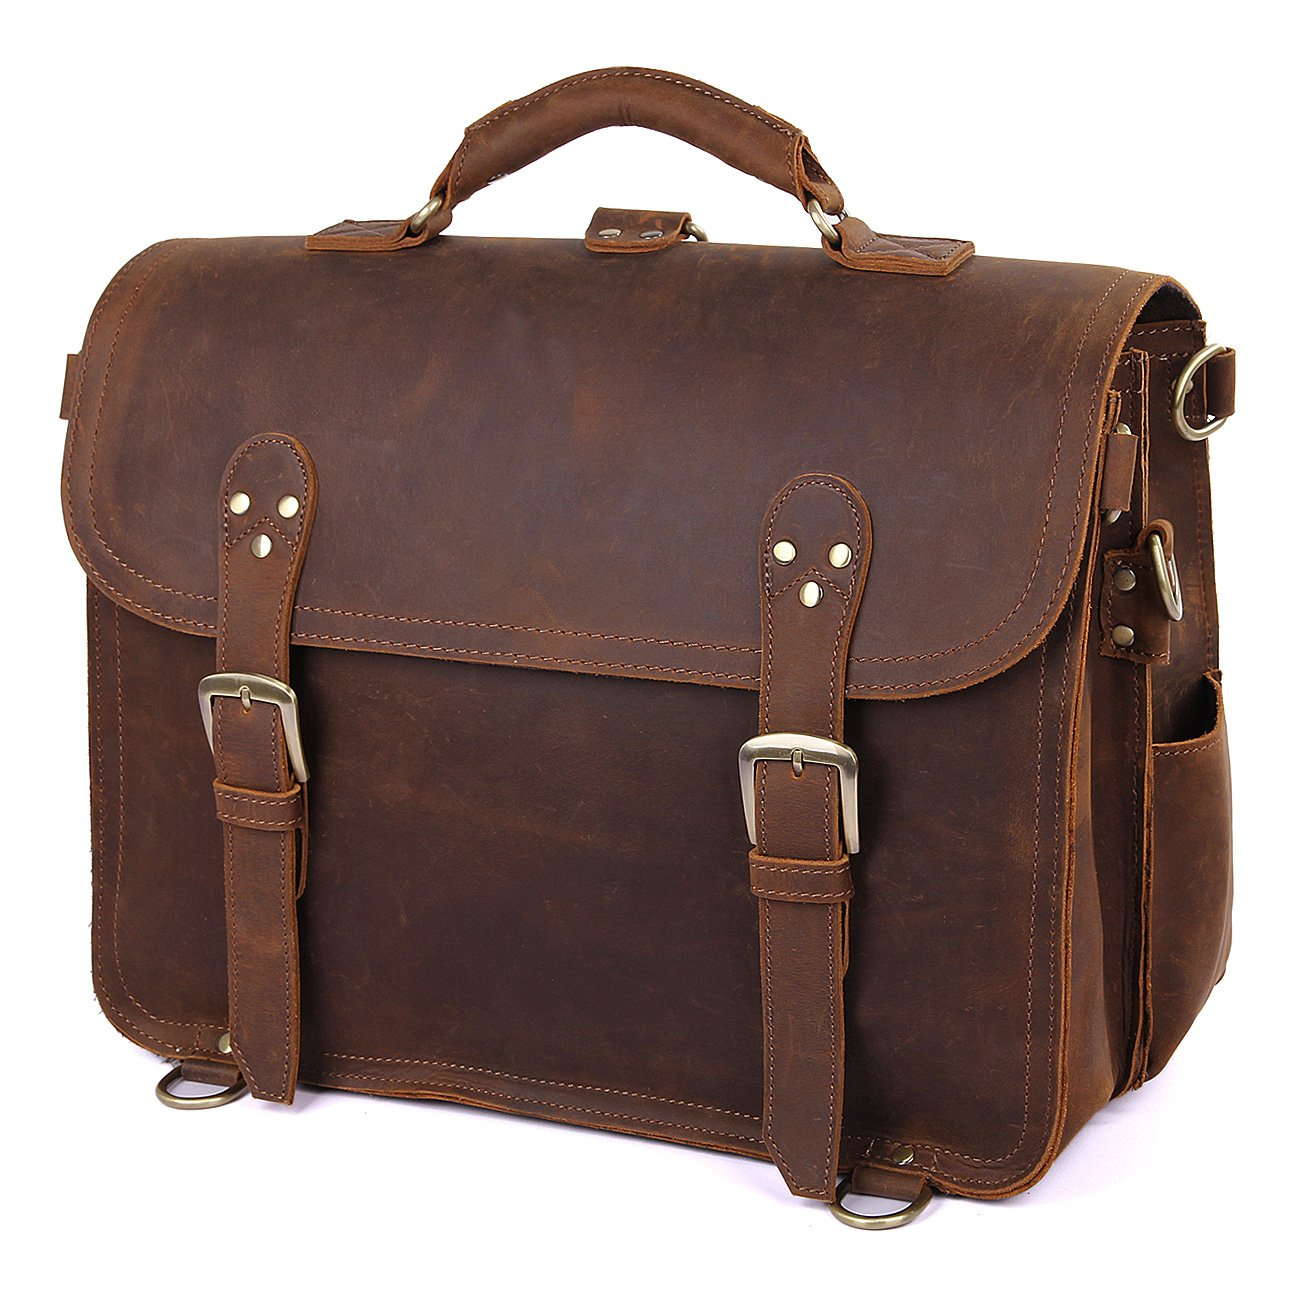 Texbo Men's Thick Cowhide Leather Messenger Bag, 16.5'' Laptop Briefcase by Texbo (Image #7)